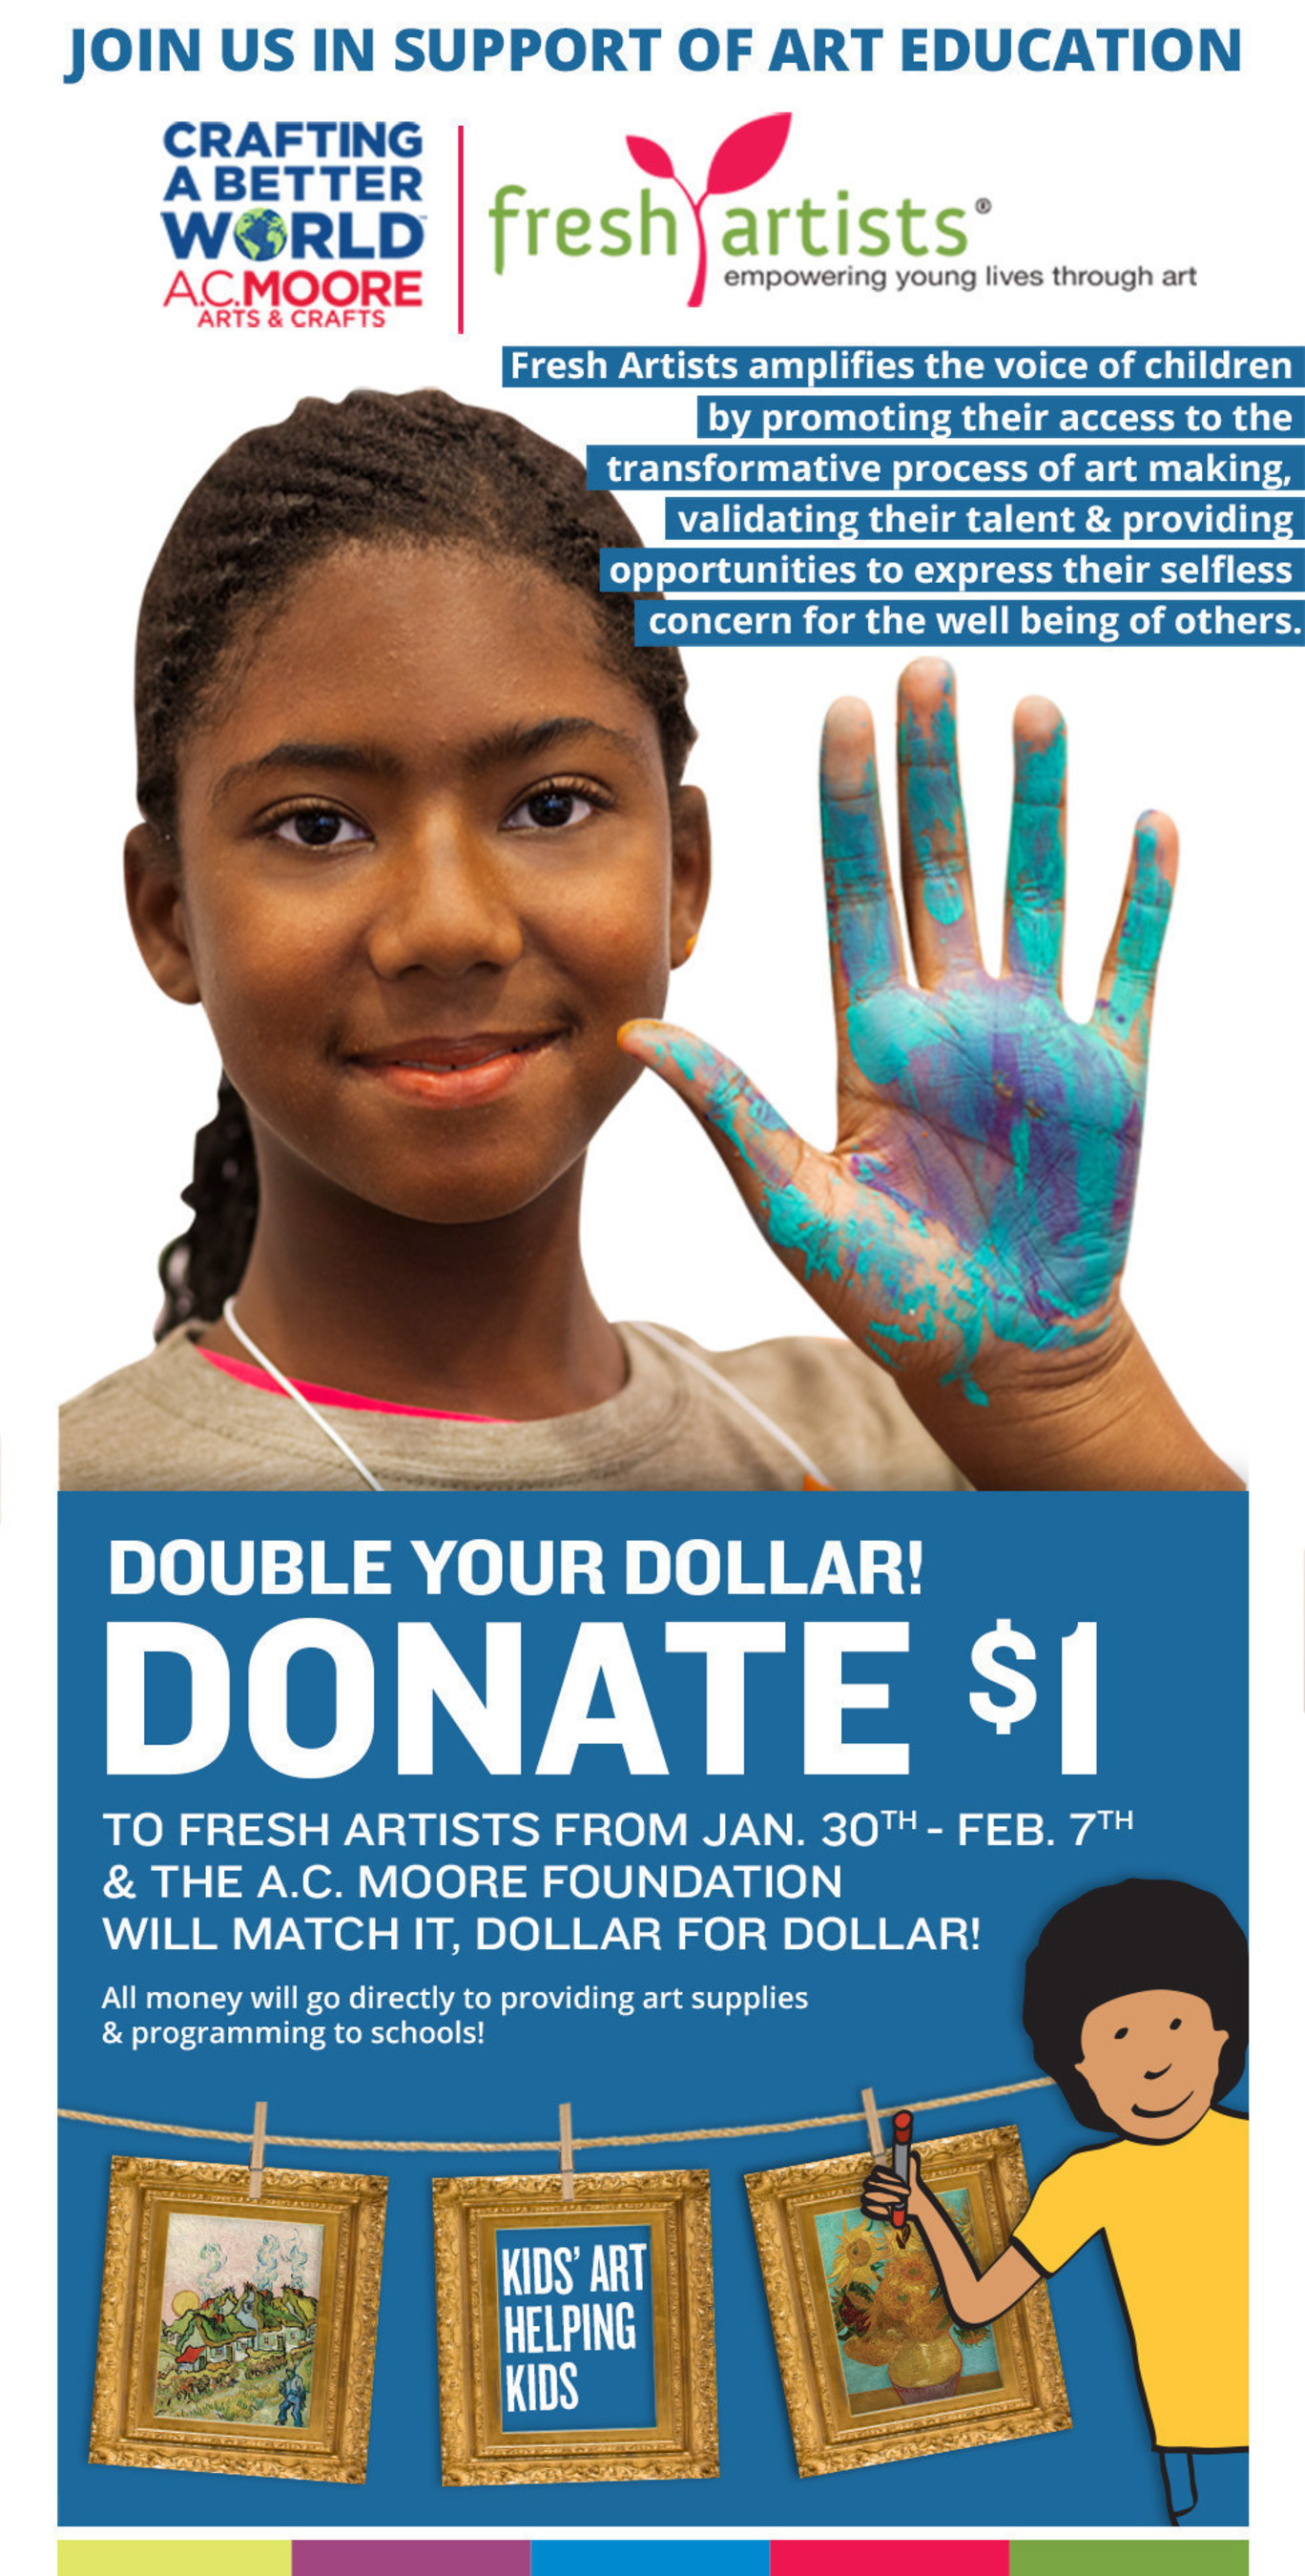 A.C. Moore, leading arts and crafts retailer, has joined forces with Fresh Artists to host a clothesline art sale fundraiser supporting art education in underfunded schools.